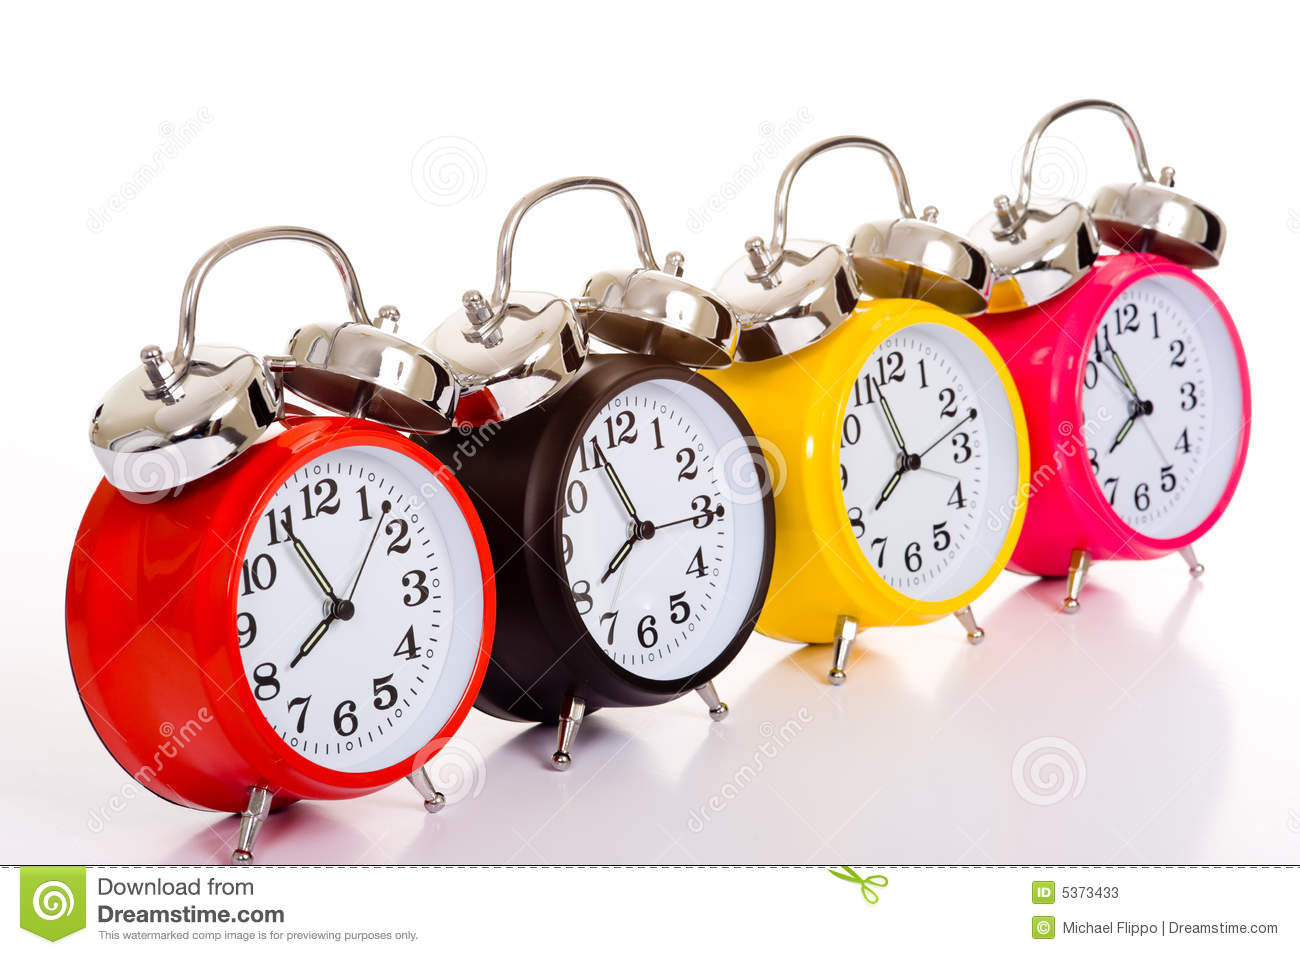 ... colored traditional alarm clocks thrown on a white background